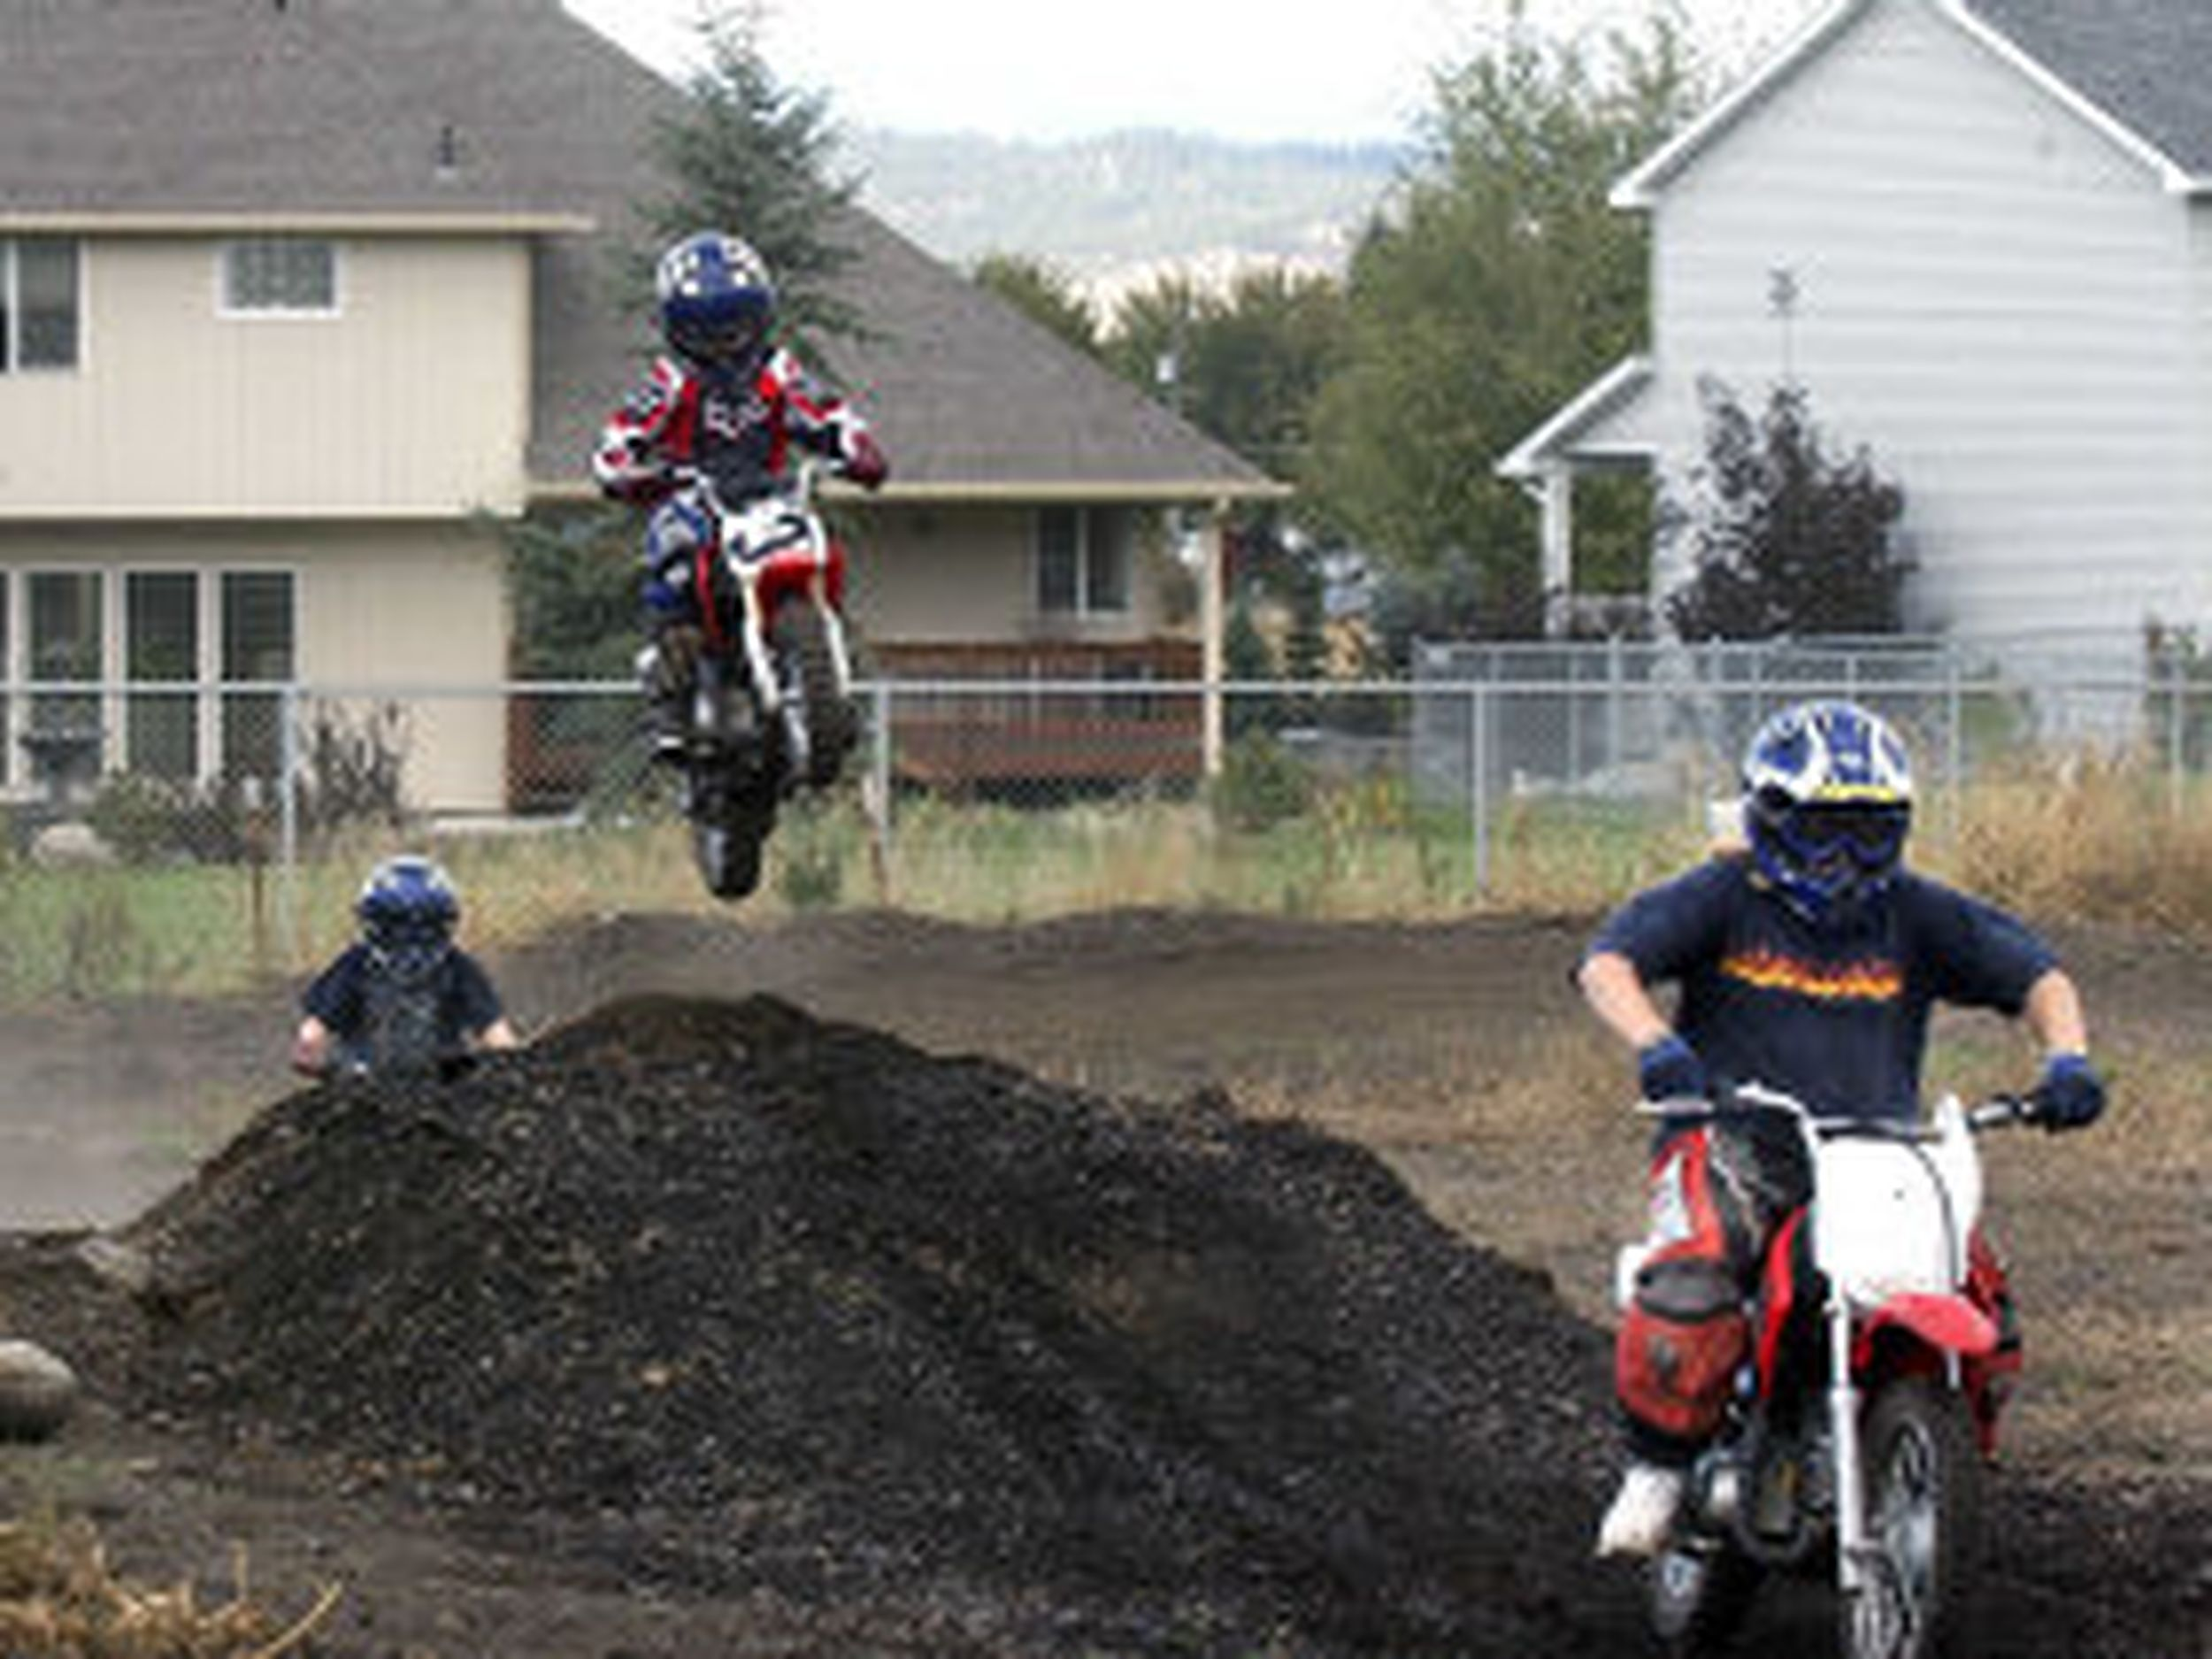 Neighbors Of Yard Motocross Track Are Jumping Mad The Spokesman Review